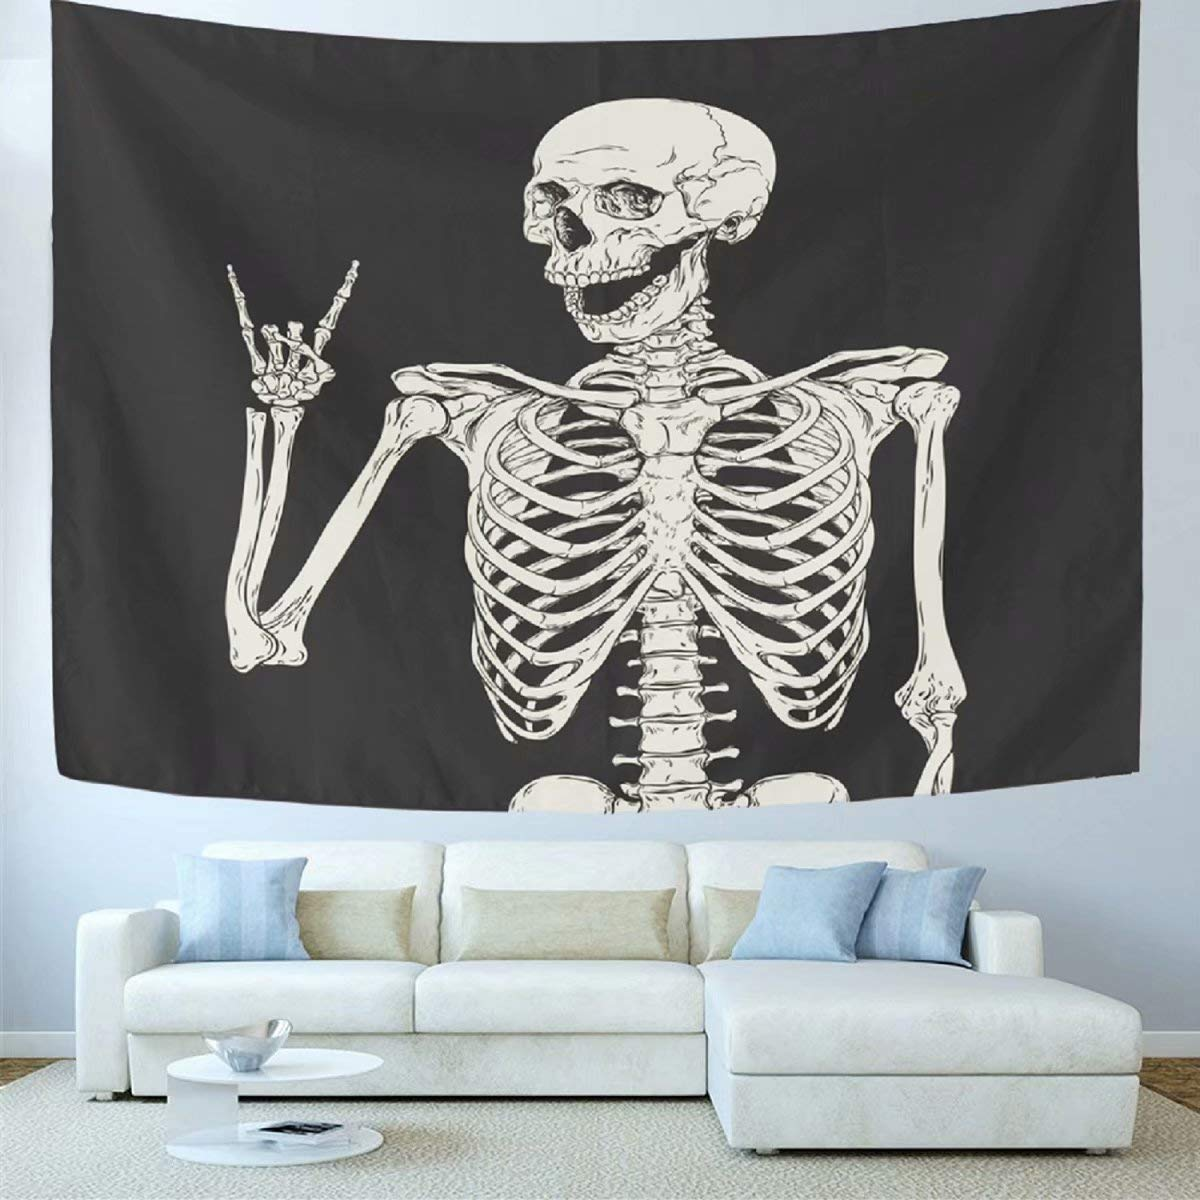 Wamika Skull Tapestry Wall Hanging Rock and Roll Home Decor Tapestries Wall Art Funny Skeleton Boho Hippie Bohemian Tapestry for Dorm Living Room Bedroom Black and White 60 X 60 Inches